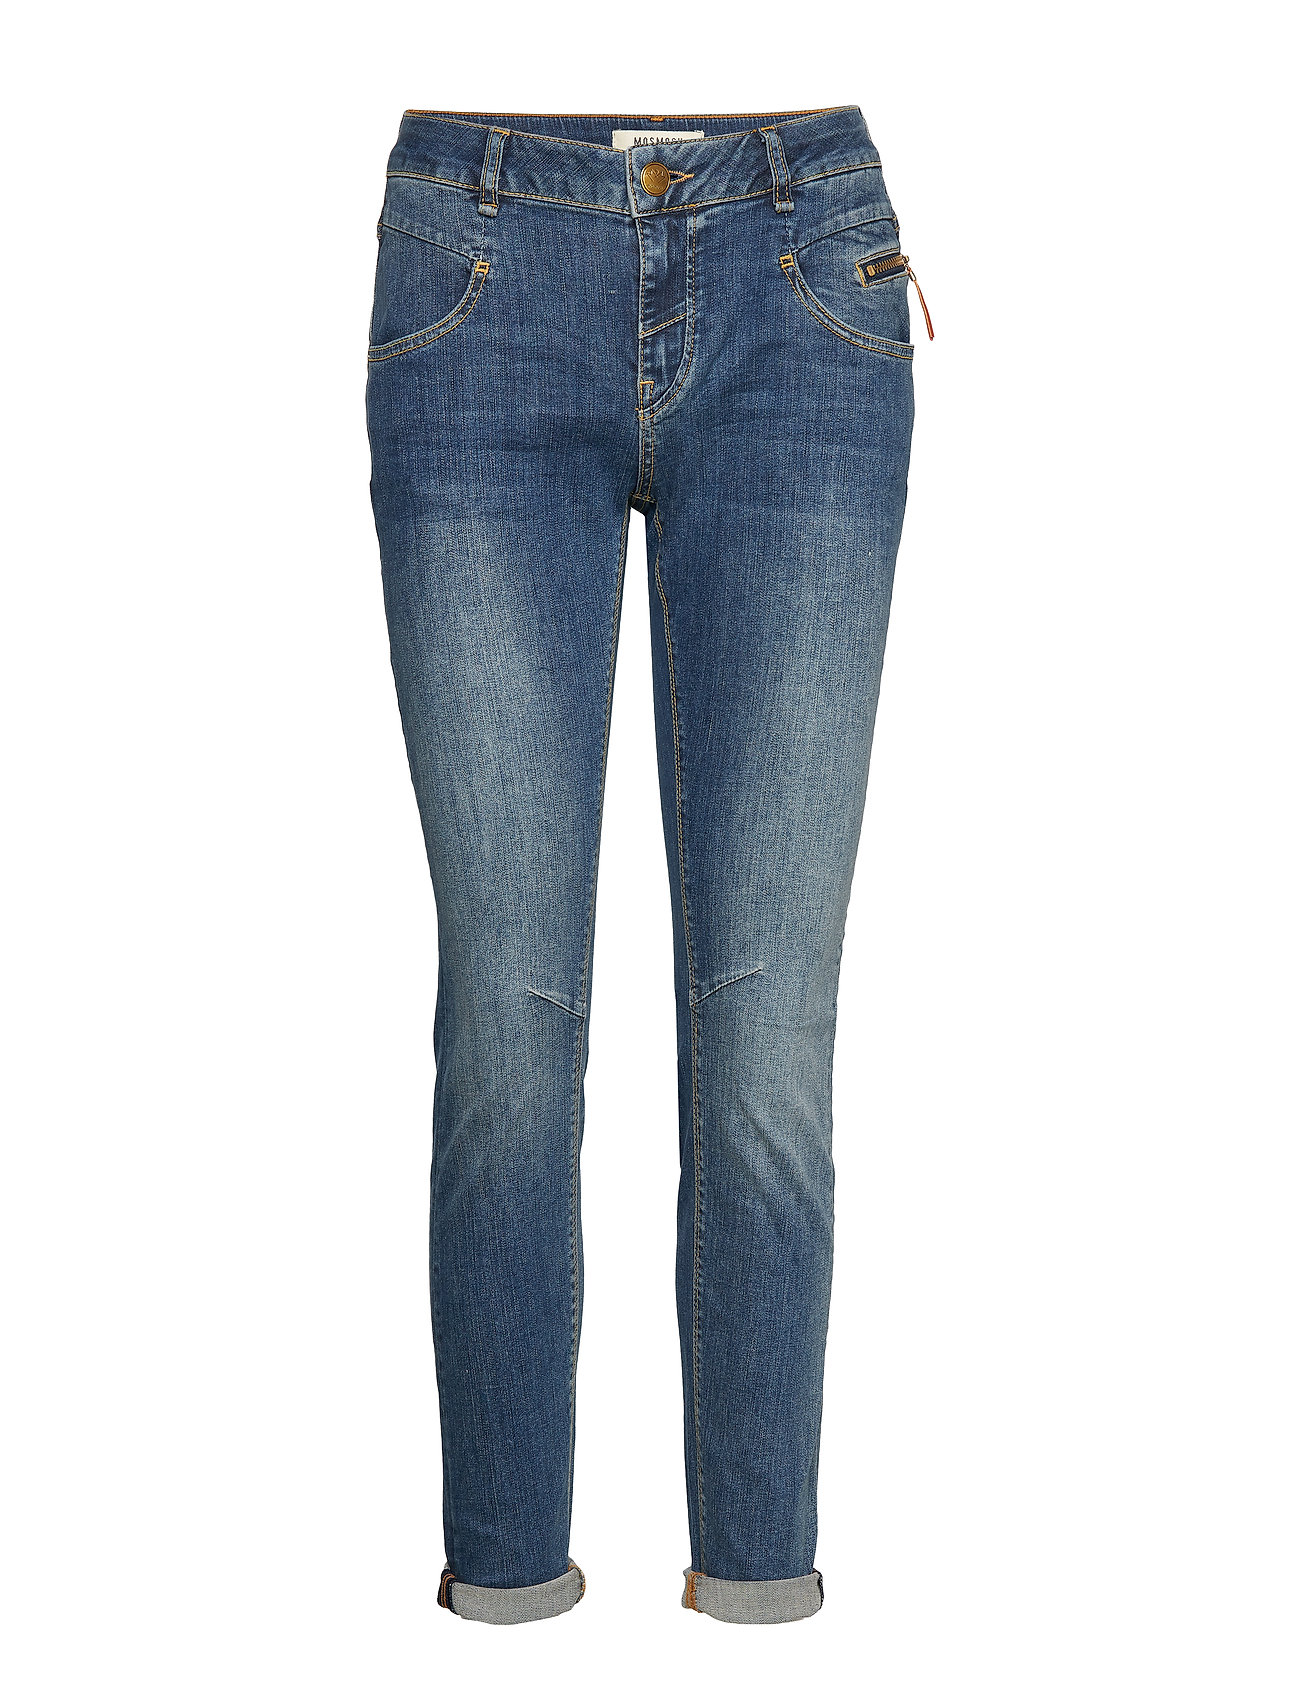 Nelly Nelly Jeansblue Favourite DenimMos DenimMos Nelly Favourite Jeansblue Mosh Mosh xrshQCBtd